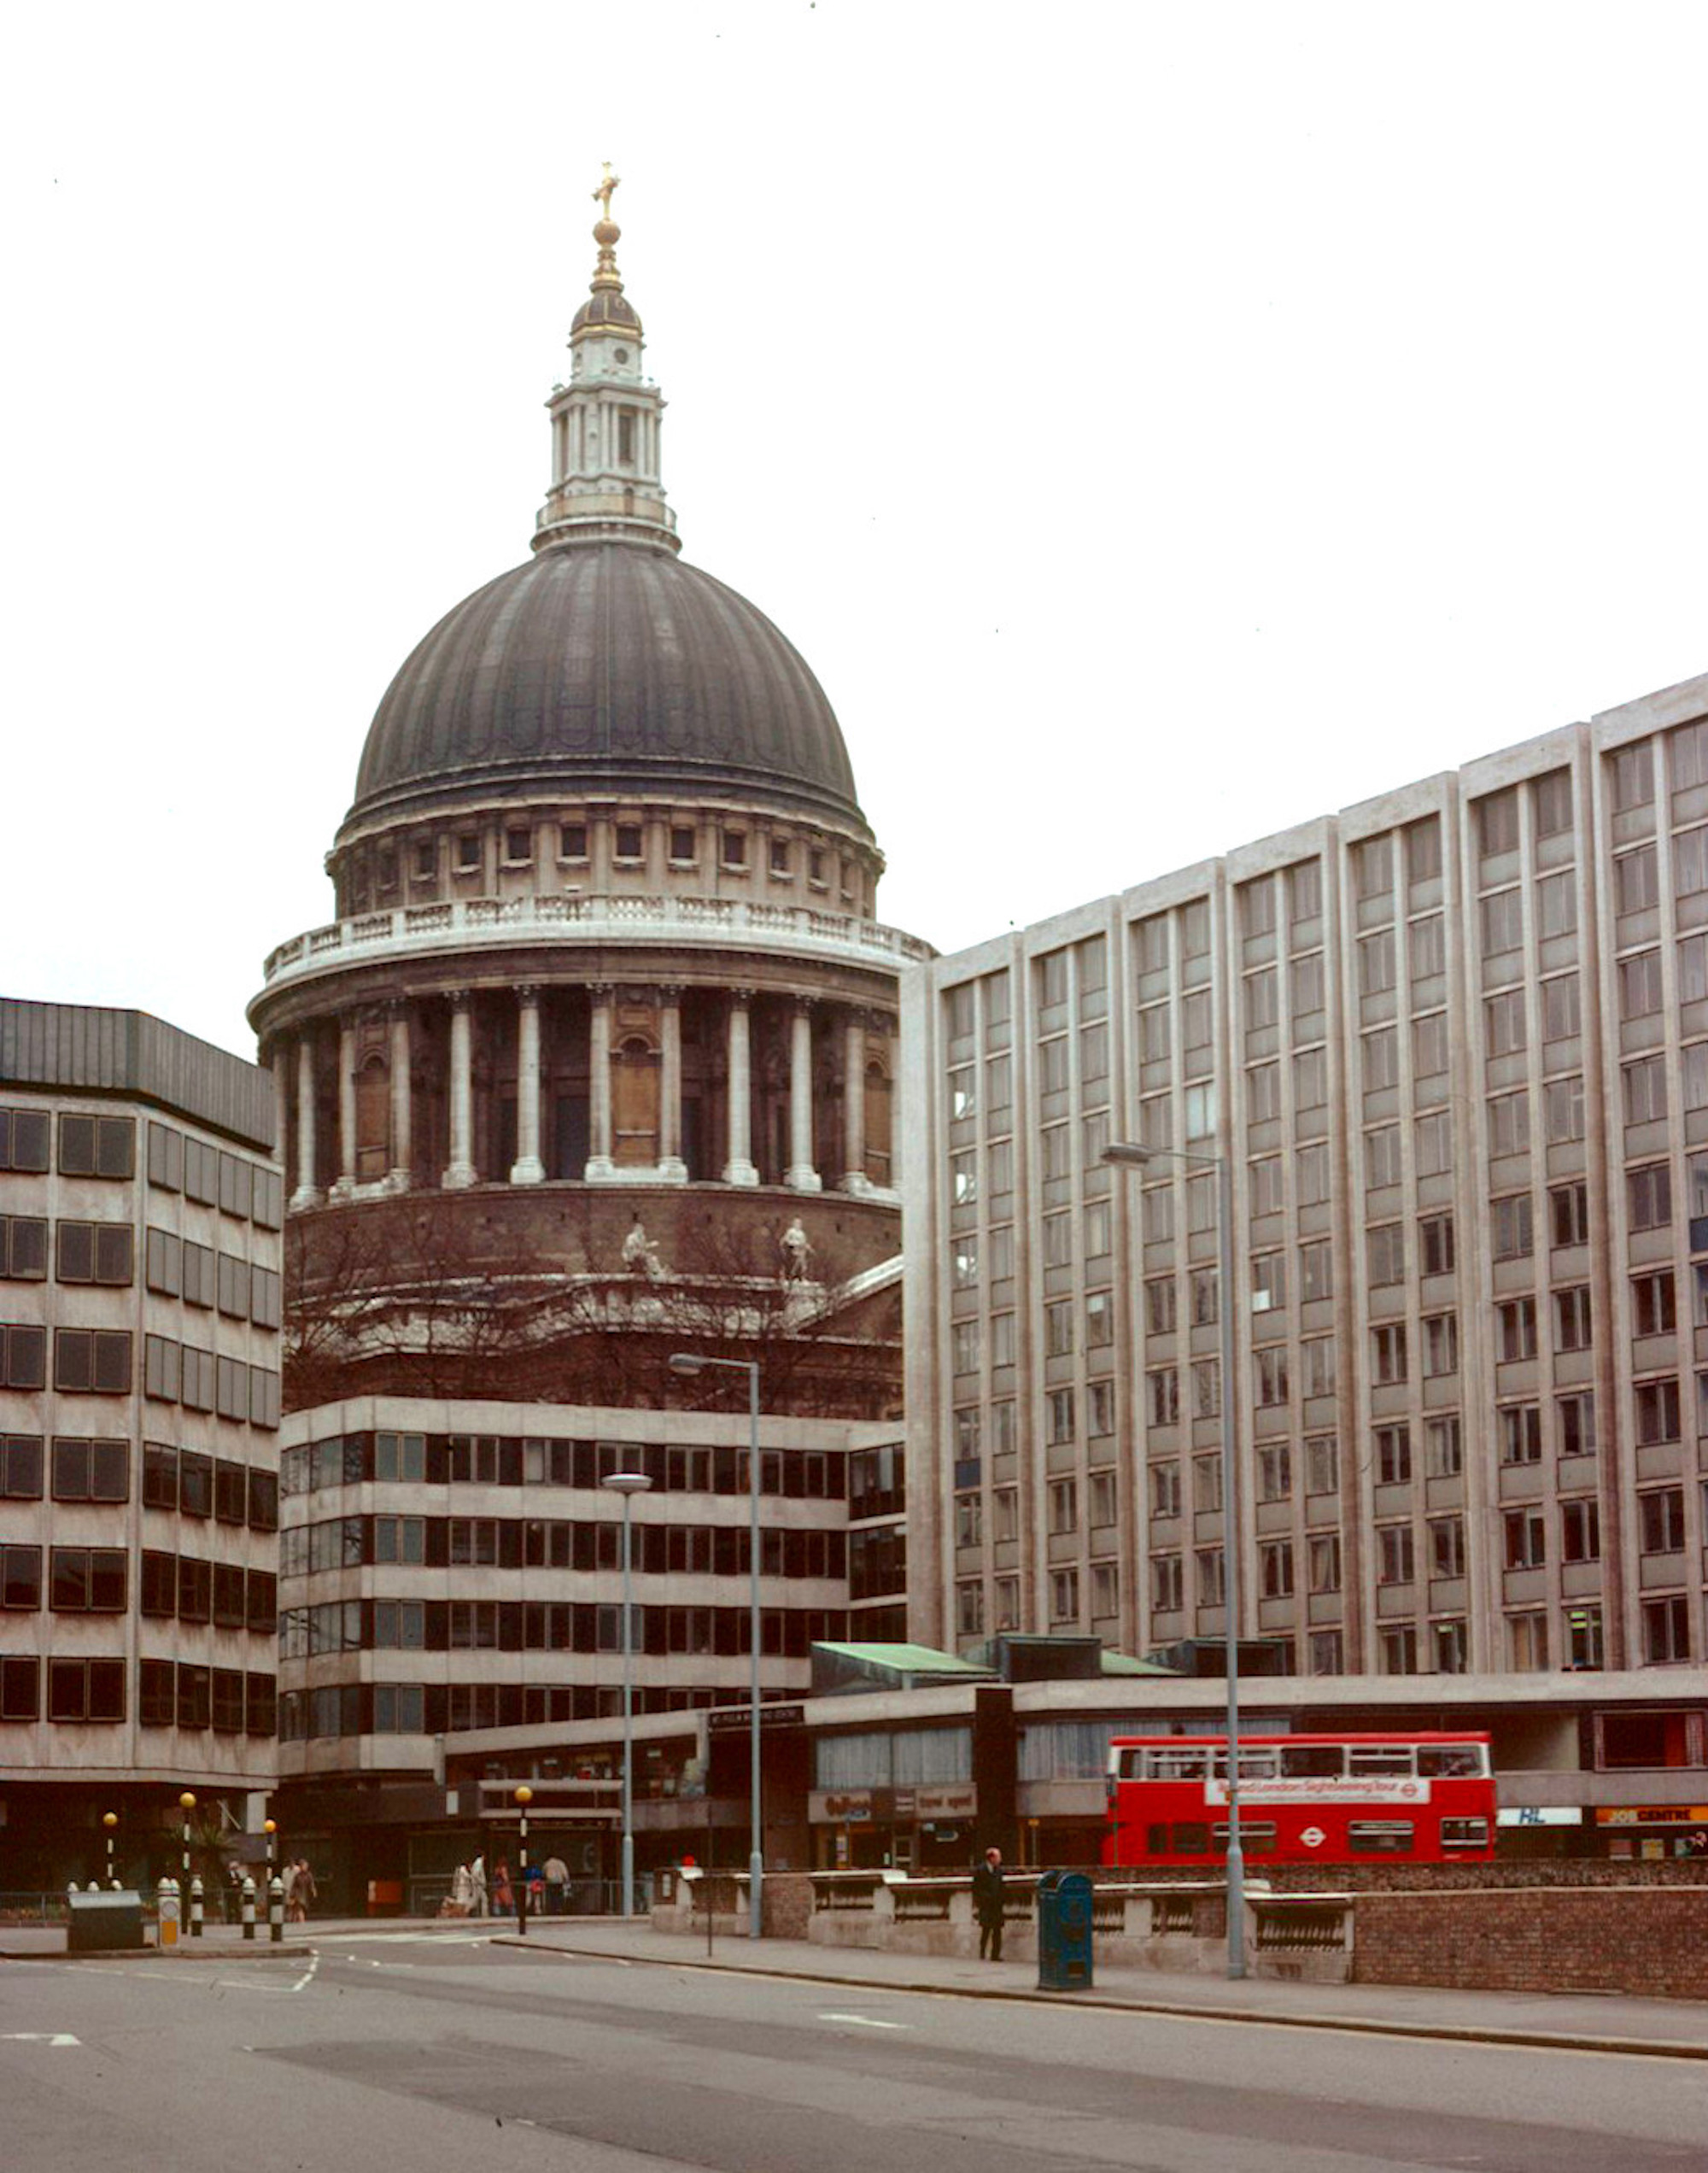 London 1979 St Paul's Cathedral